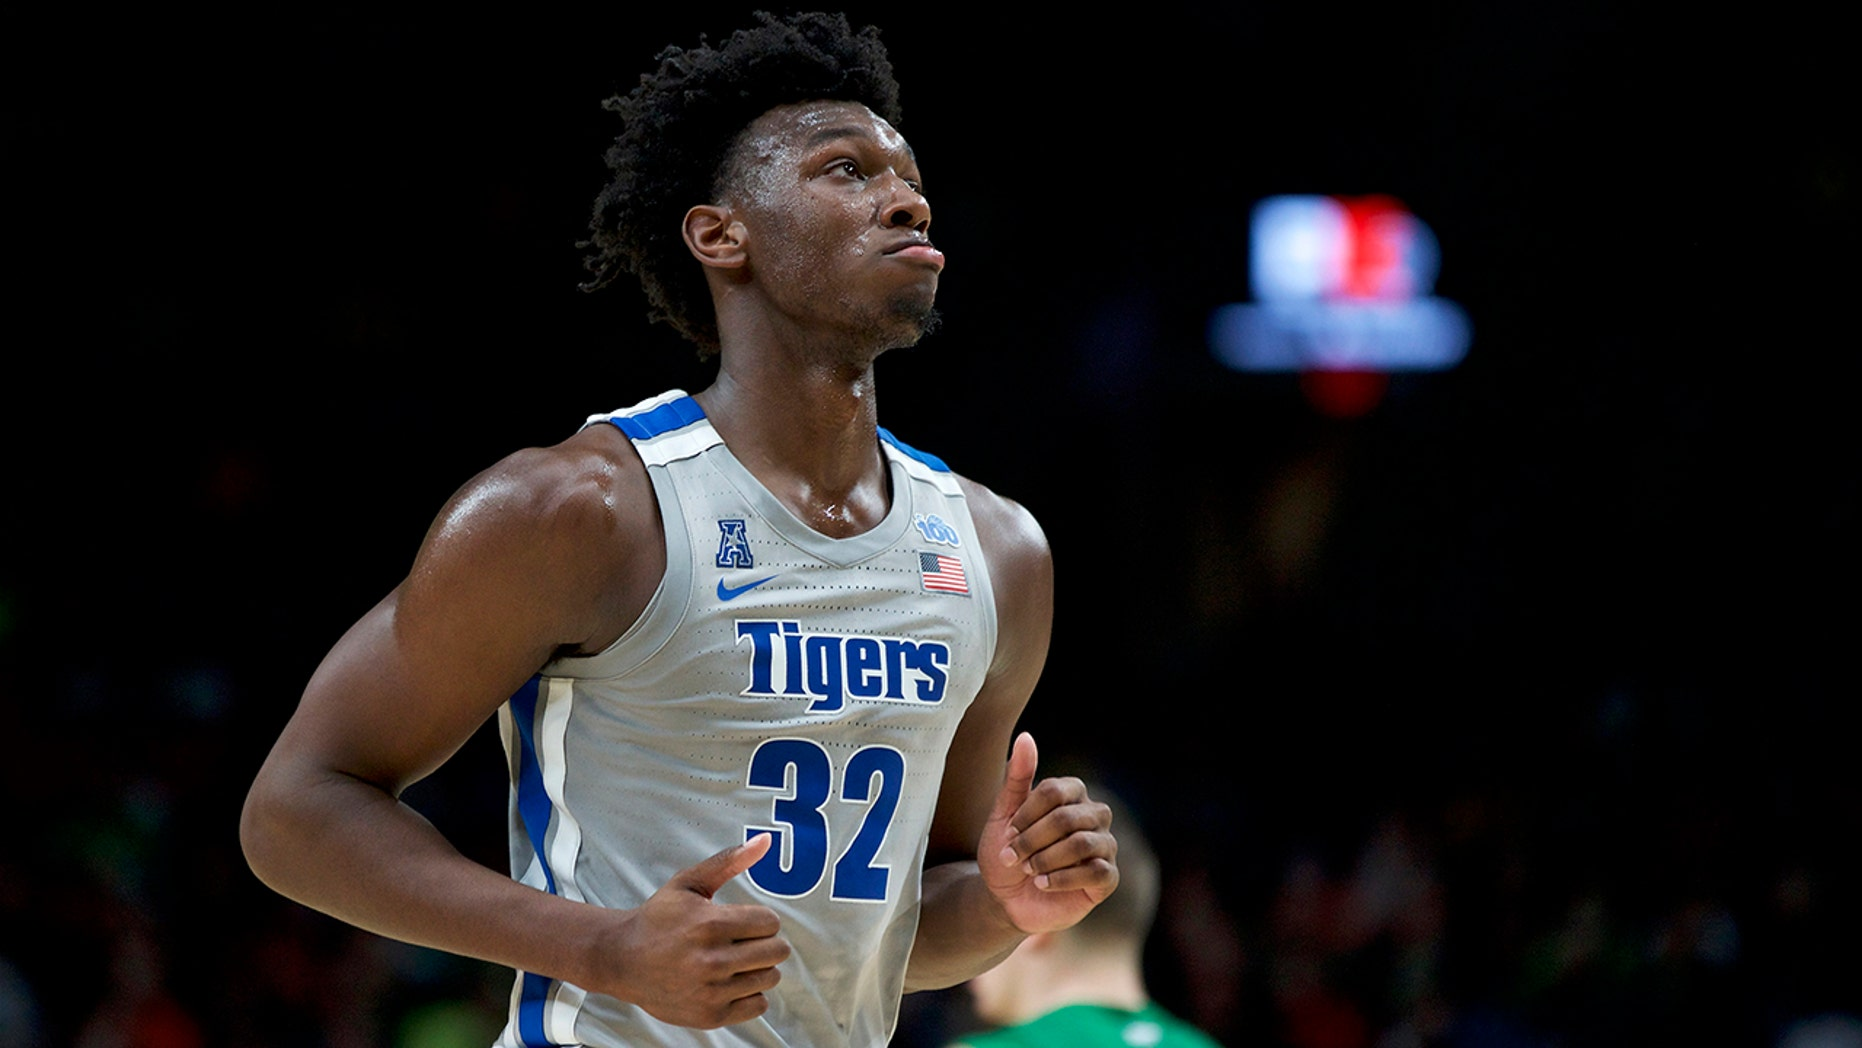 Memphis center James Wiseman runs off the court during the second half of an NCAA college basketball game against Oregon in Portland, Ore., Tuesday, Nov. 12, 2019. Oregon won 82-74. (AP Photo/Craig Mitchelldyer)